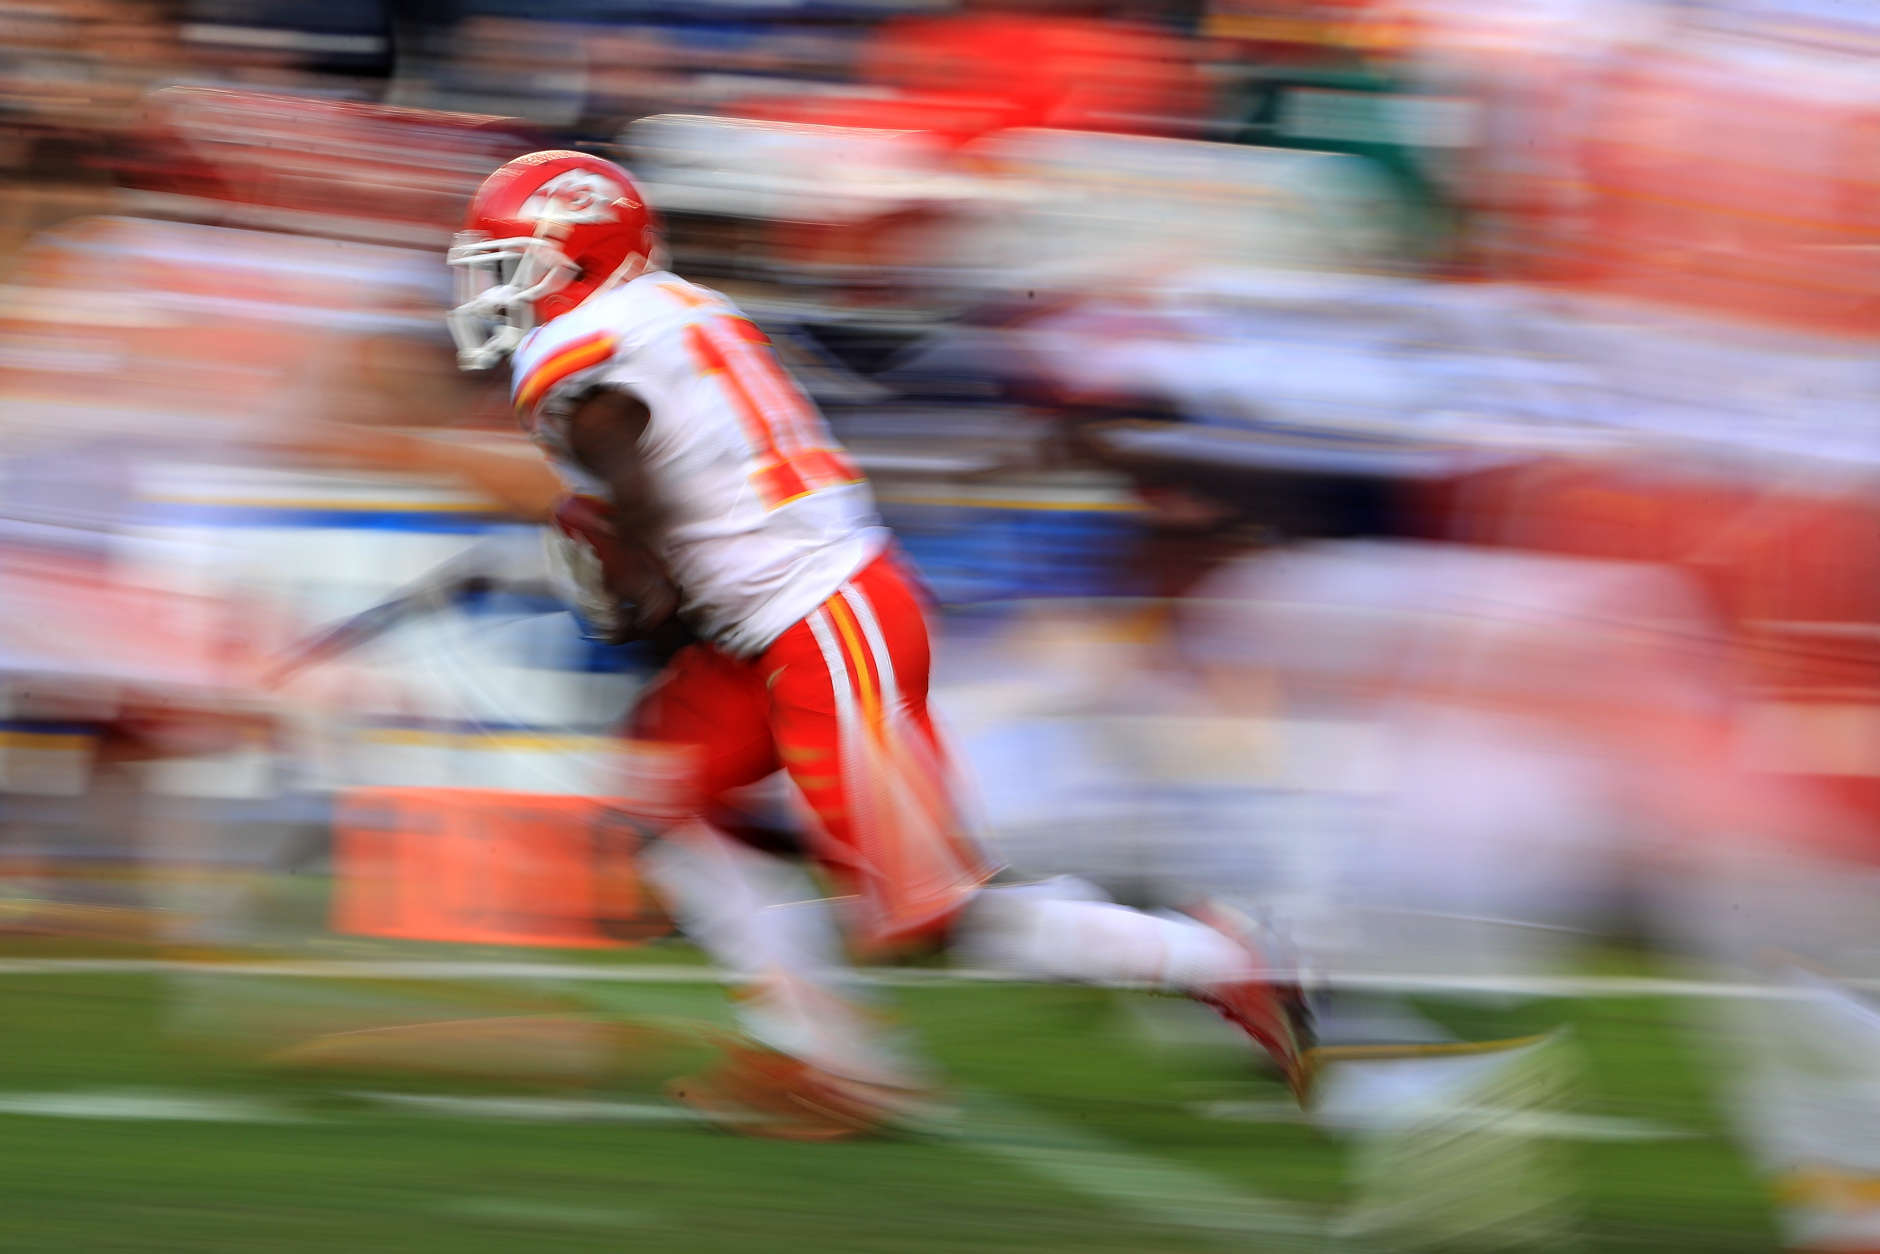 SAN DIEGO, CA - JANUARY 01:  Tyreek Hill #10 of the Kansas City Chiefs runs back a punt for 95 yards against the San Diego Chargers during the second half of a game at Qualcomm Stadium on January 1, 2017 in San Diego, California.  (Photo by Sean M. Haffey/Getty Images)